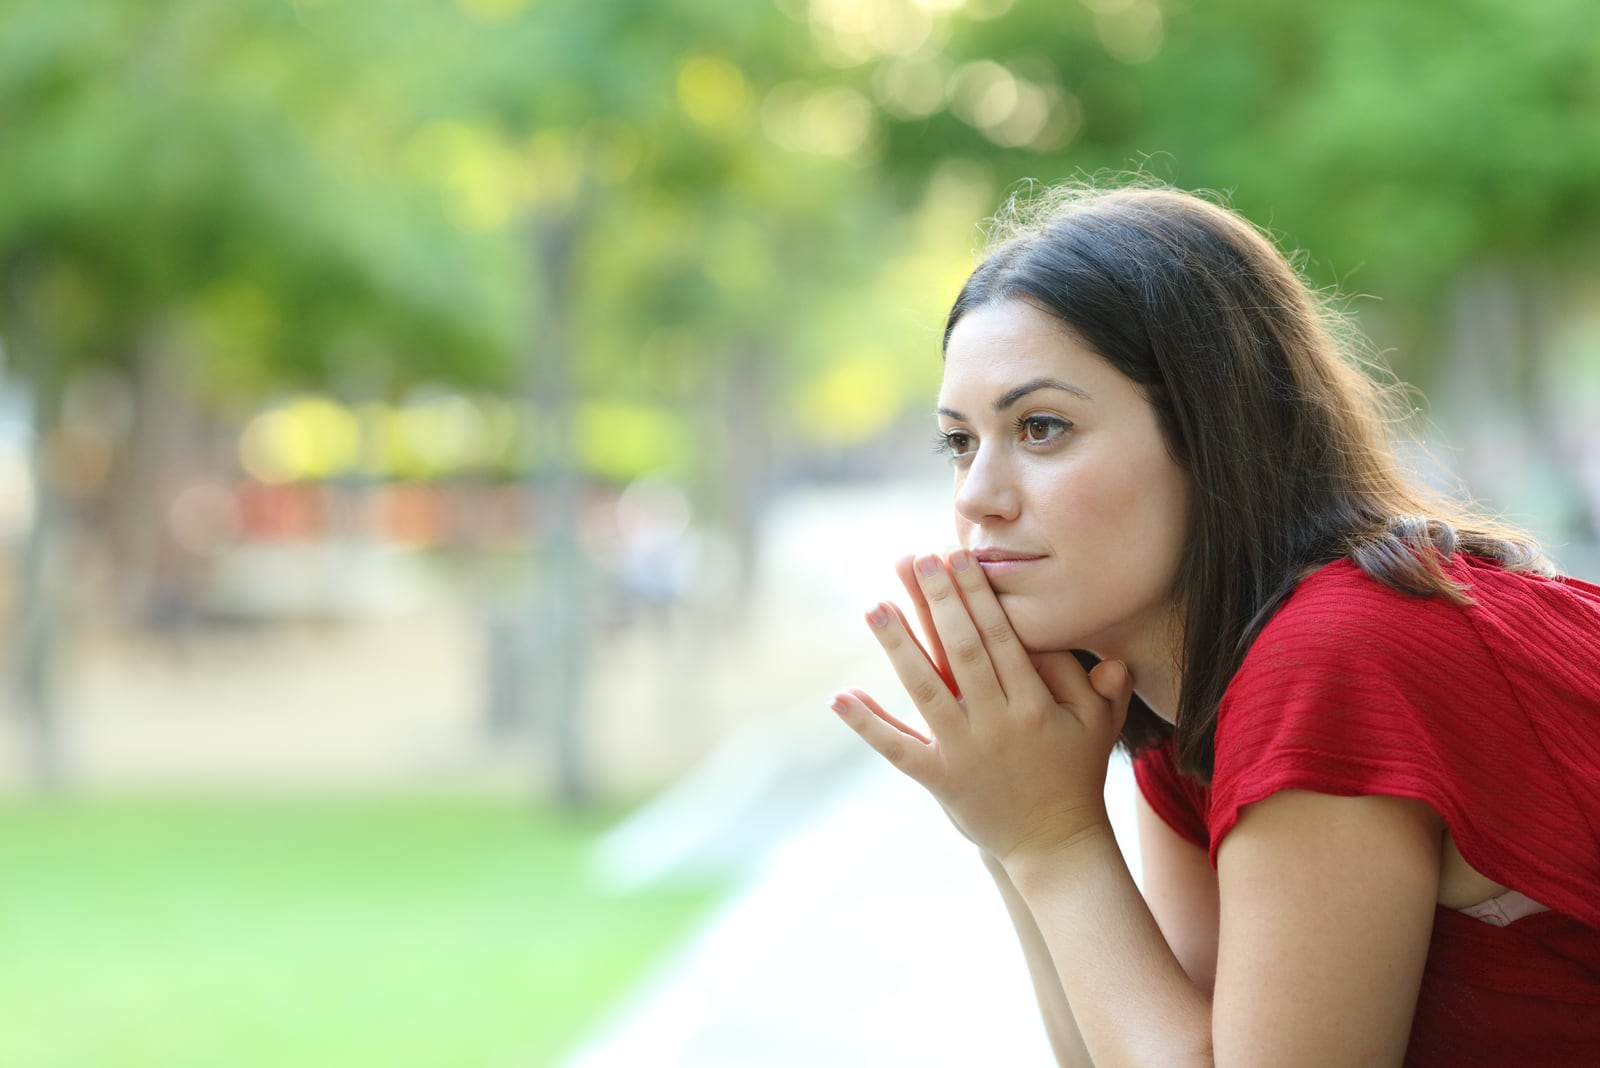 pensive woman sitting on a bench in a park